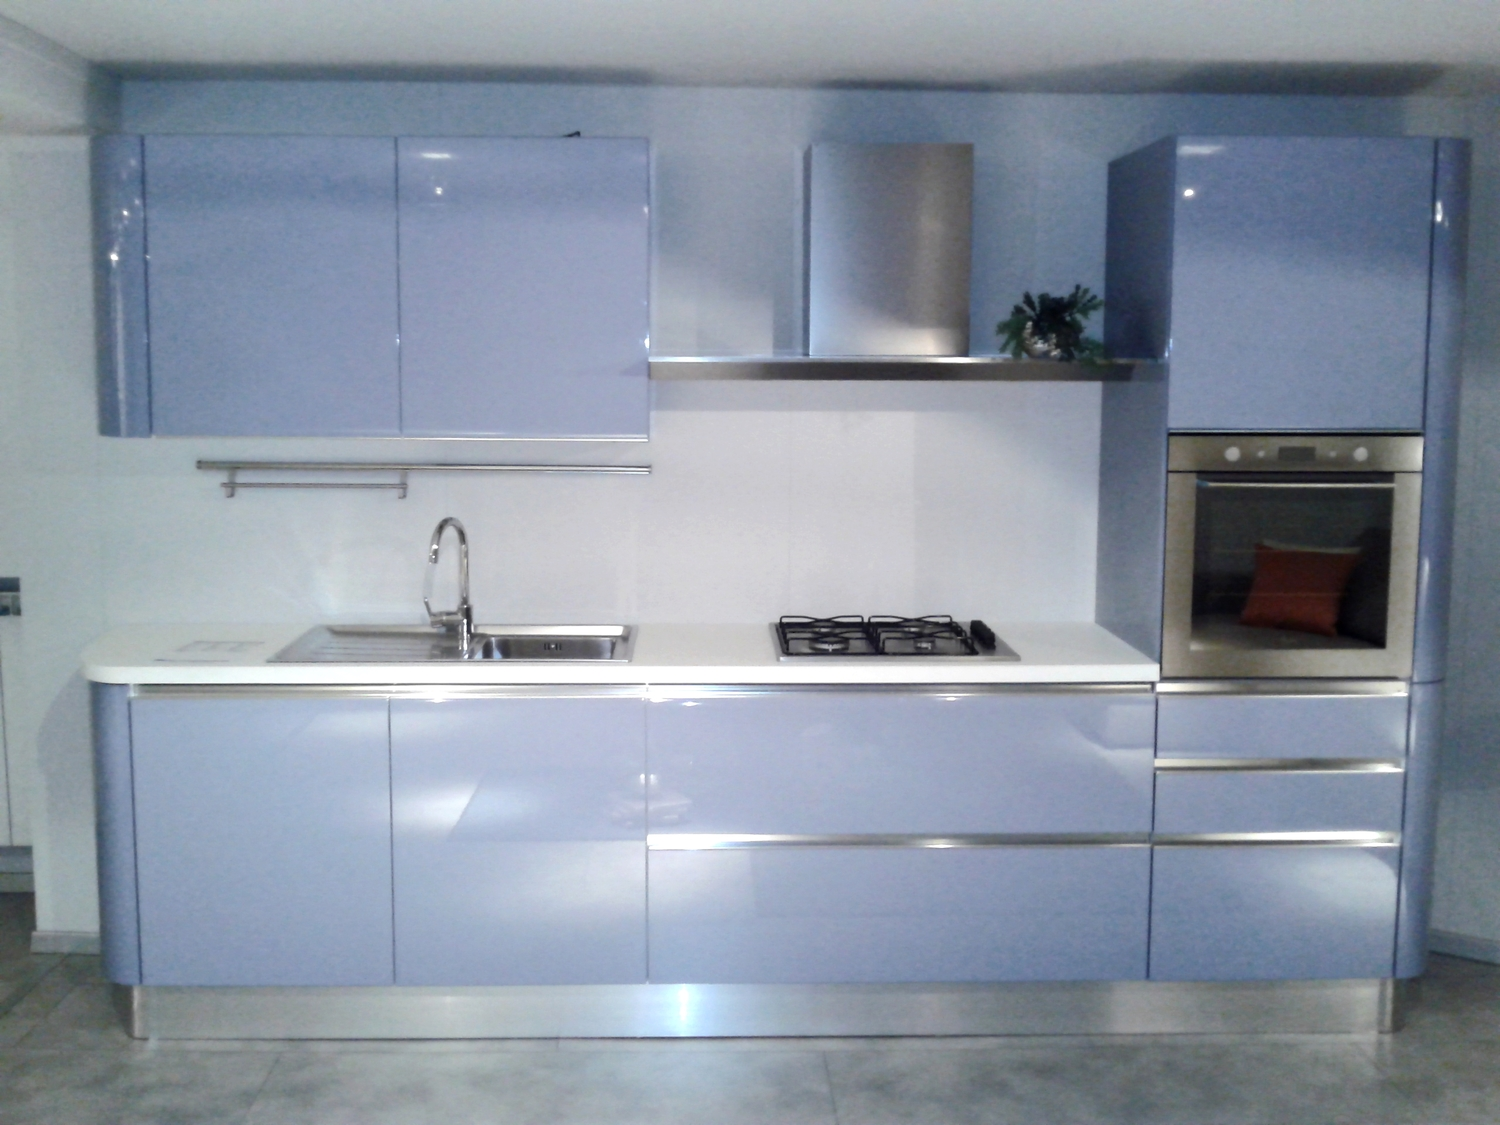 Cucine offerta milano know more about cucine in offerta and insert quality for your life quanto - Life cucine milano ...